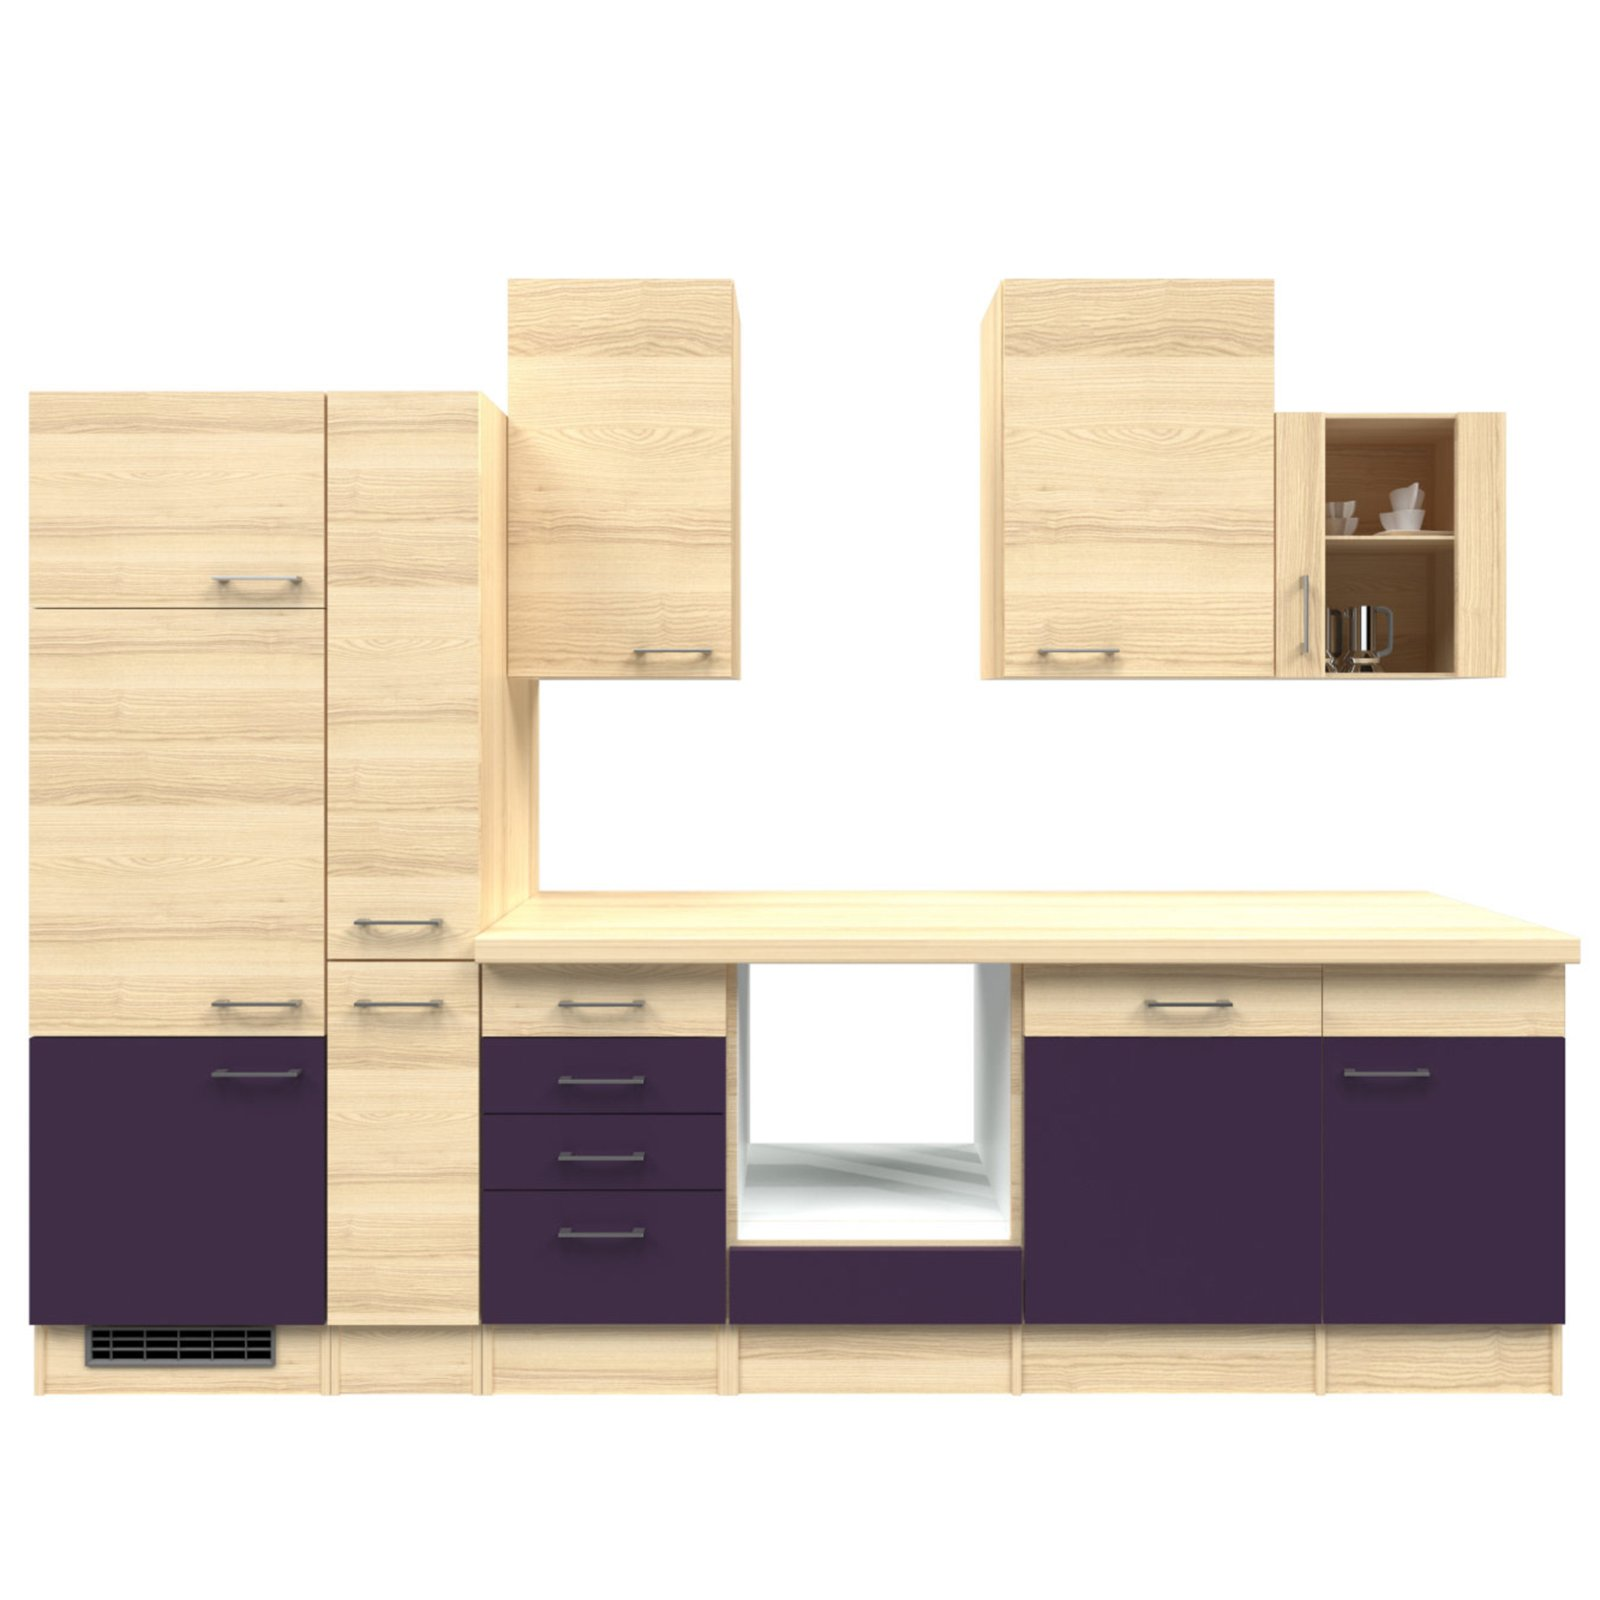 k chenblock focus akazie aubergine 310 cm k chenzeilen ohne e ger te k chenzeilen. Black Bedroom Furniture Sets. Home Design Ideas